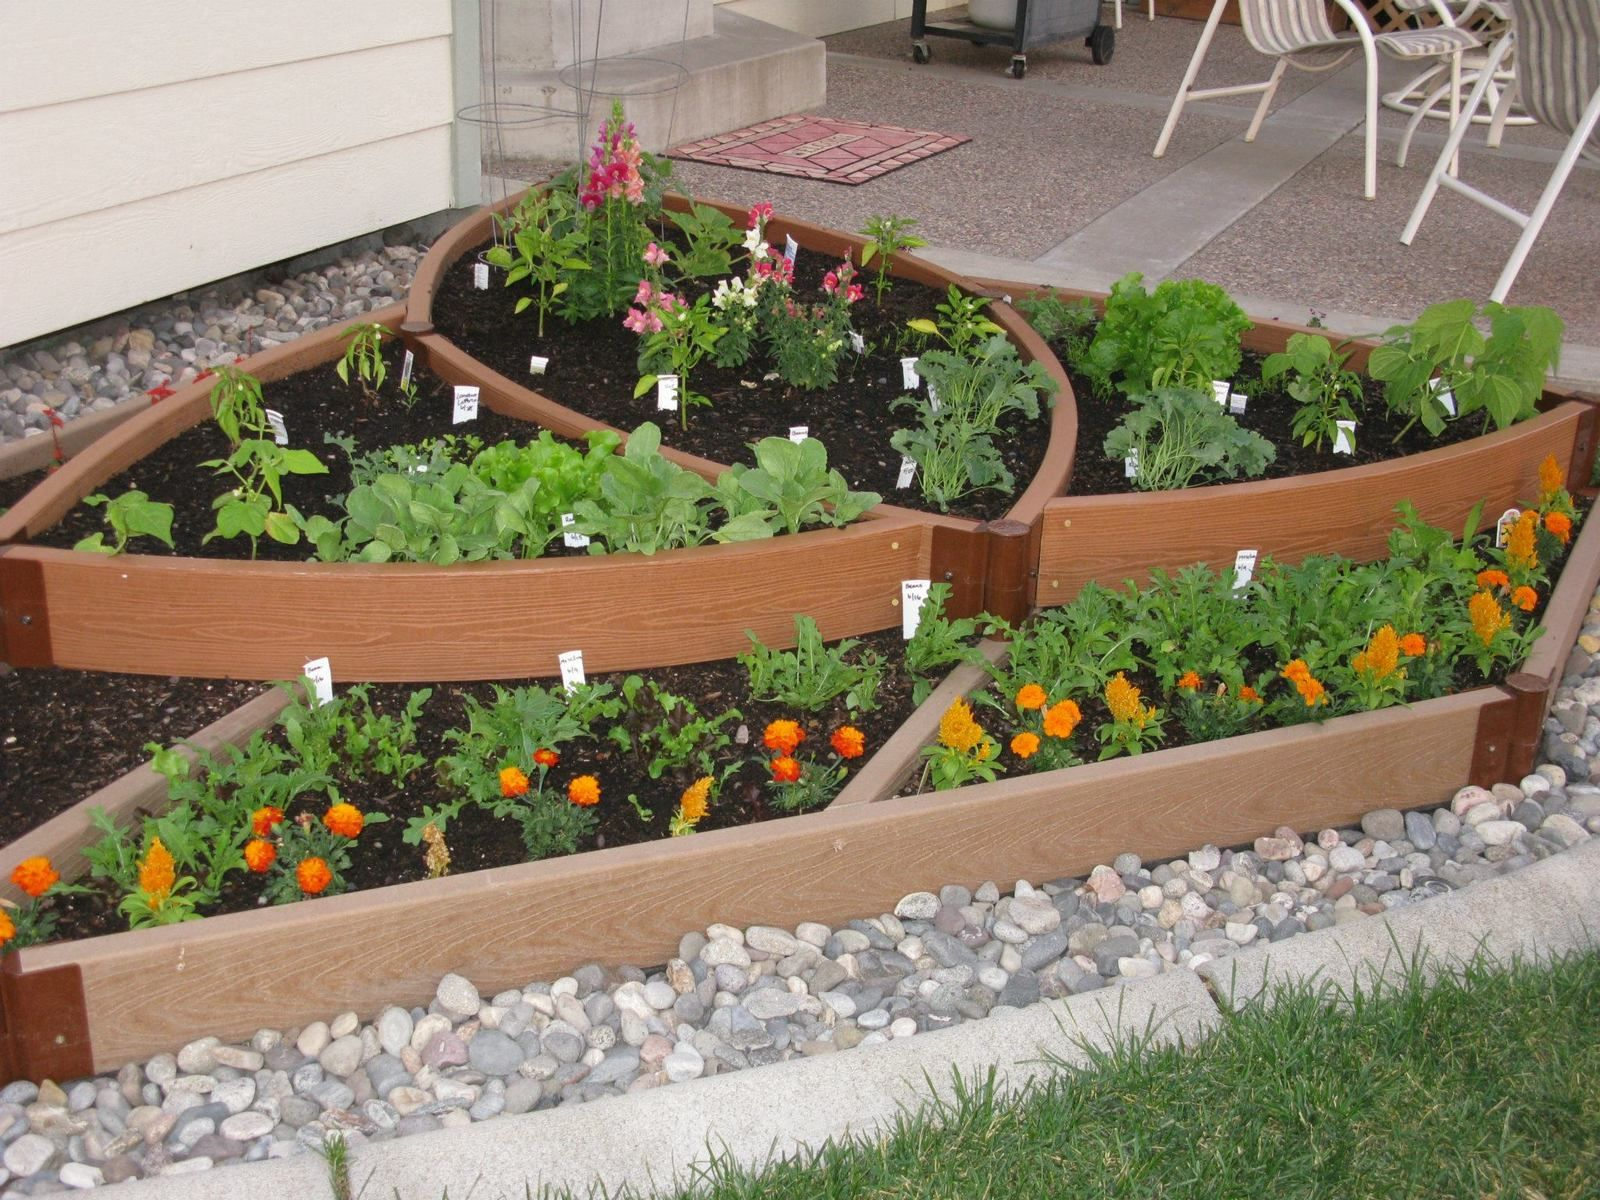 Raised garden raised garden bed kits for sale and buy for Small vegetable garden